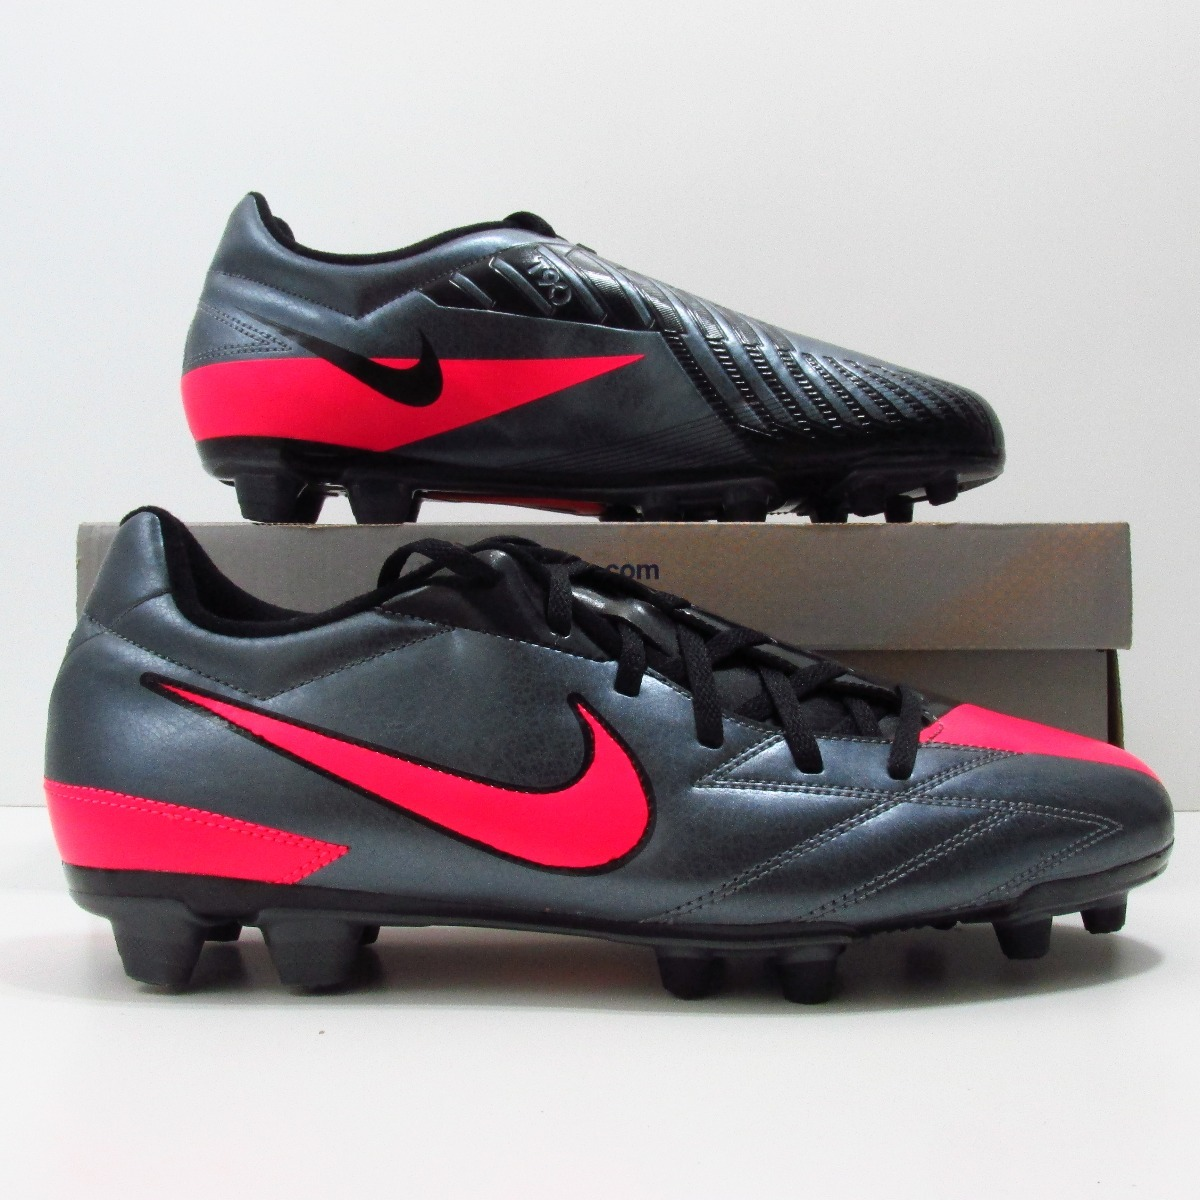 ... thoughts on 438fb 2c0ff chuteira campo nike total 90 fg 100% original. Carregando  zoom ... 2934b90fa7b84